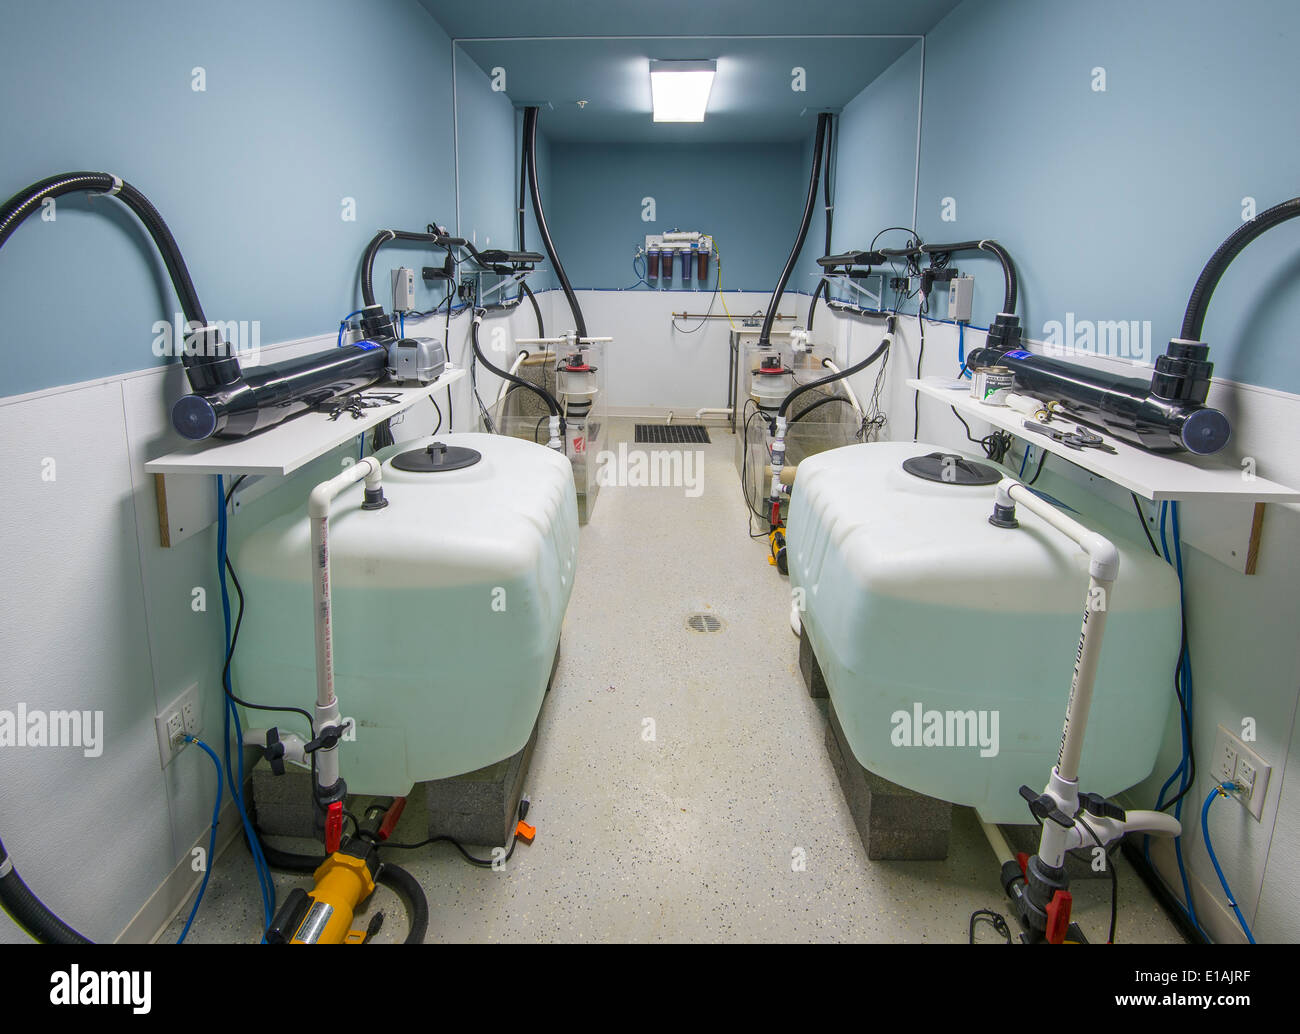 Salt Water Aquarium Equipment Support Room - Stock Image